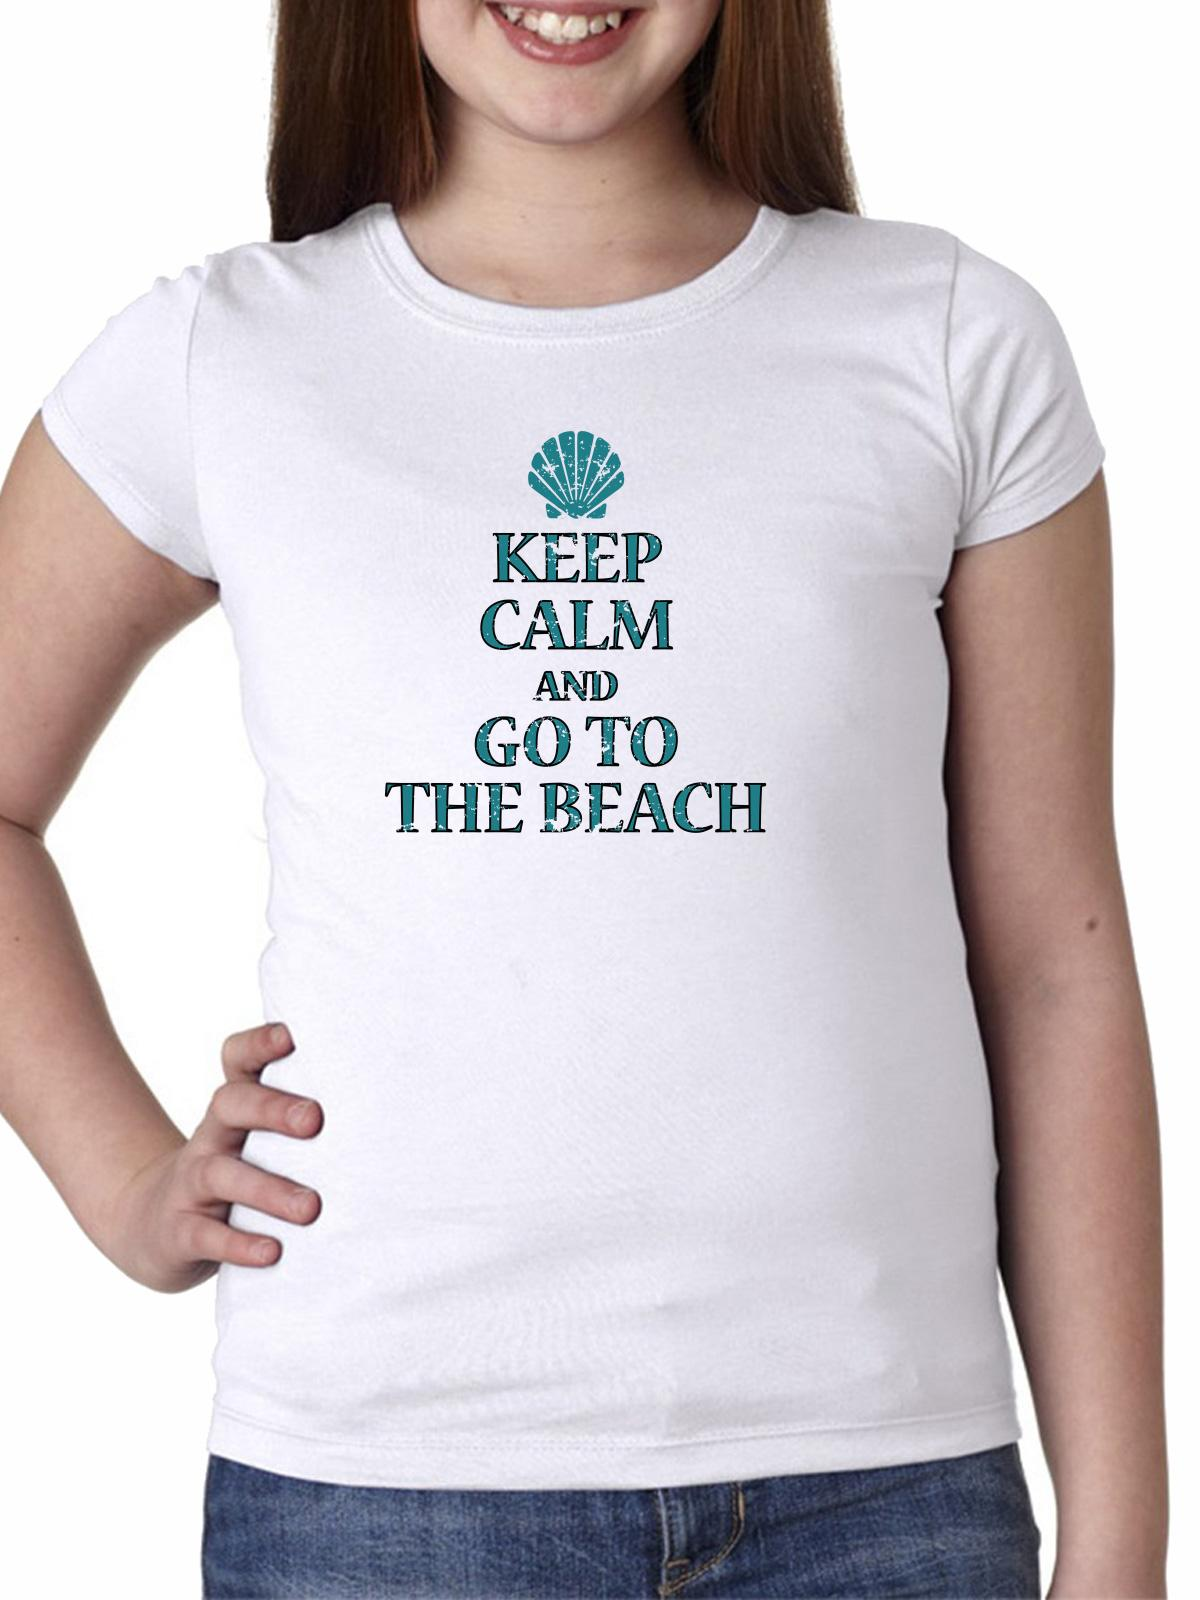 Keep Calm And Go To The Beach - Sea Shell Graphic Girl's Cotton Youth T-Shirt